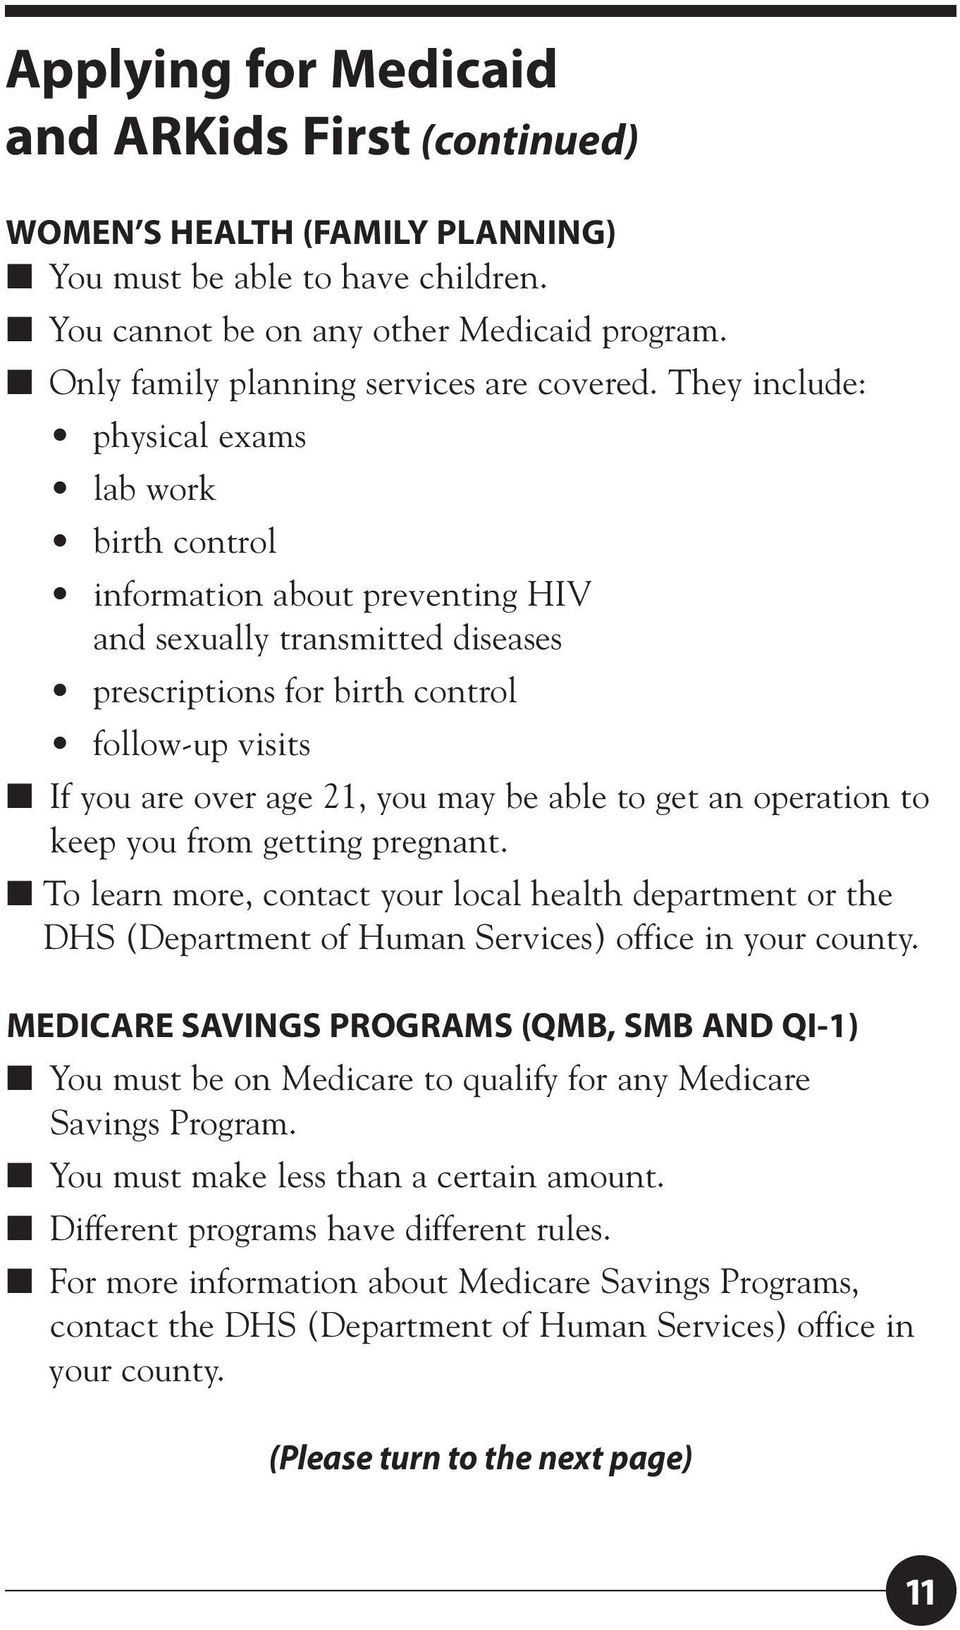 They include: physical exams lab work birth control information about preventing HIV and sexually transmitted diseases prescriptions for birth control follow-up visits If you are over age 21, you may